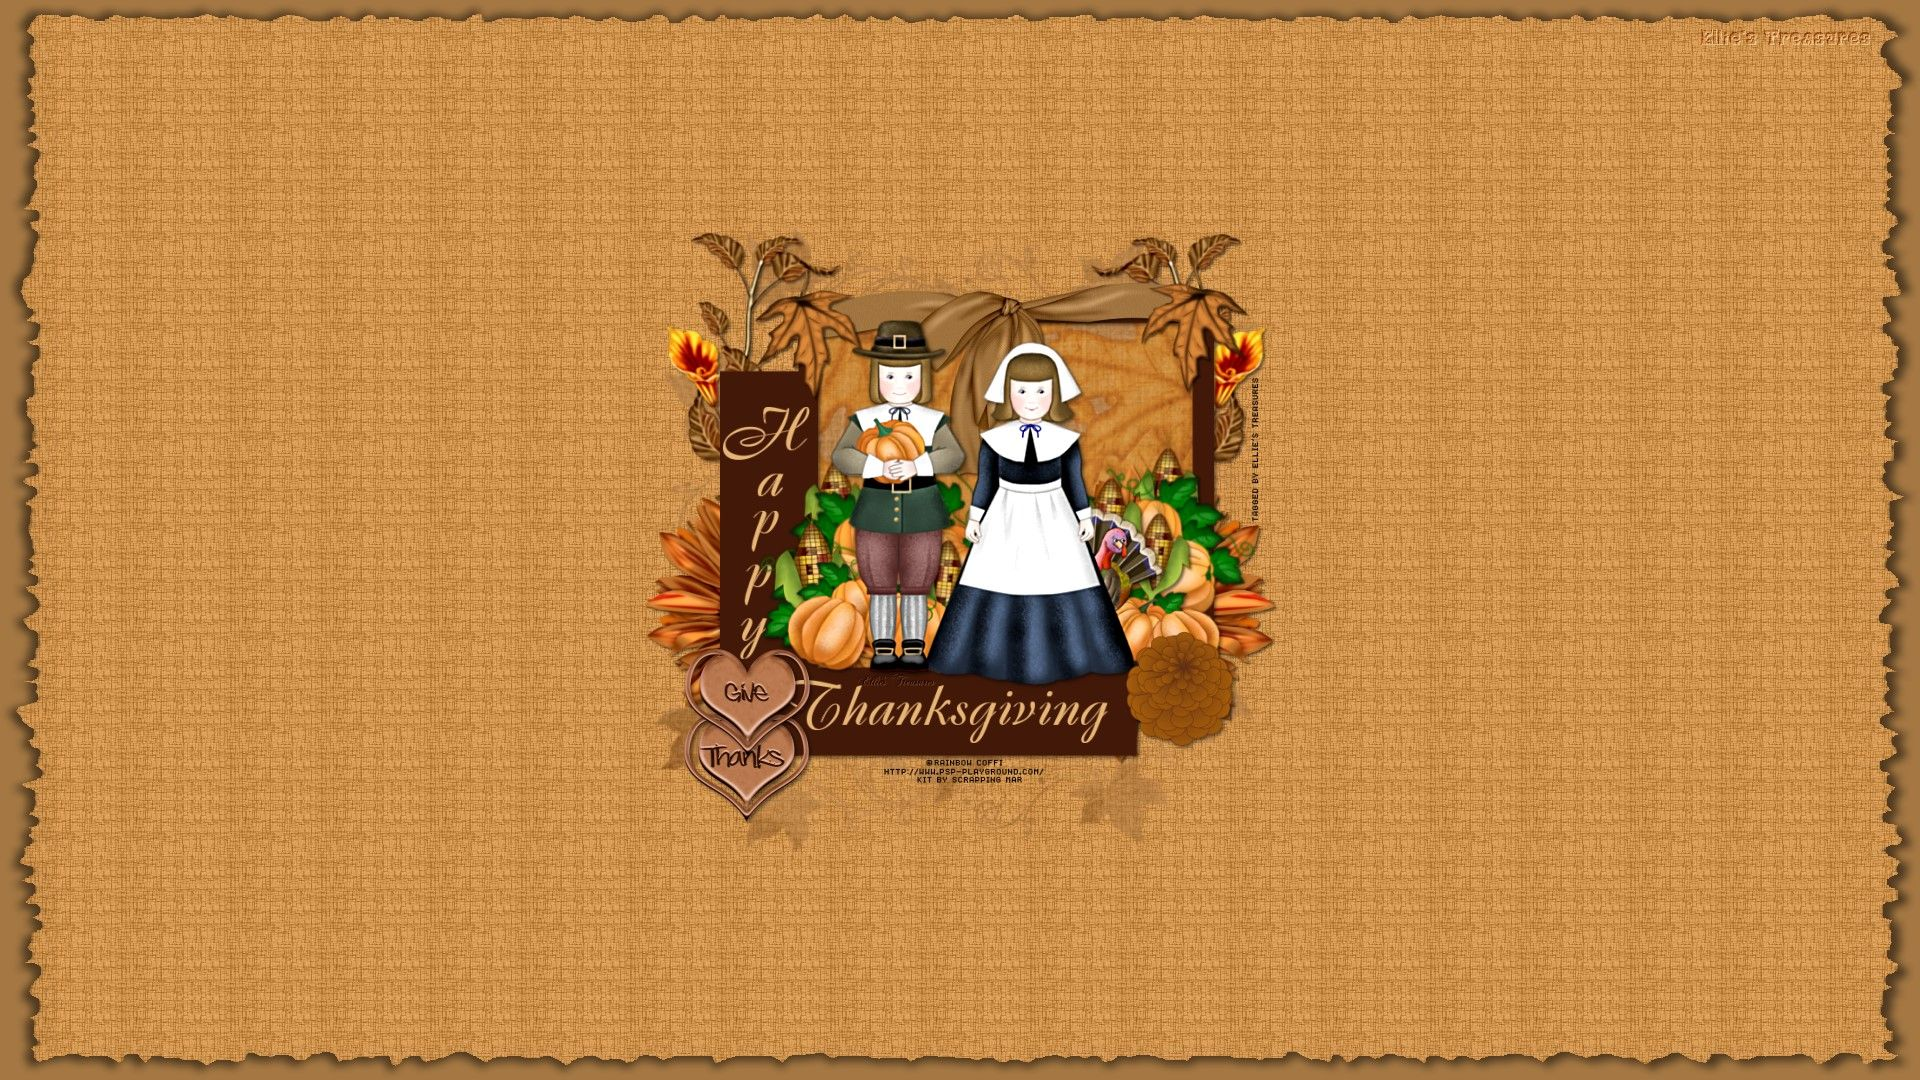 thanksgiving wallpaper background | Wallpaper, cute, thanksgiving, seasons, happy - 551396